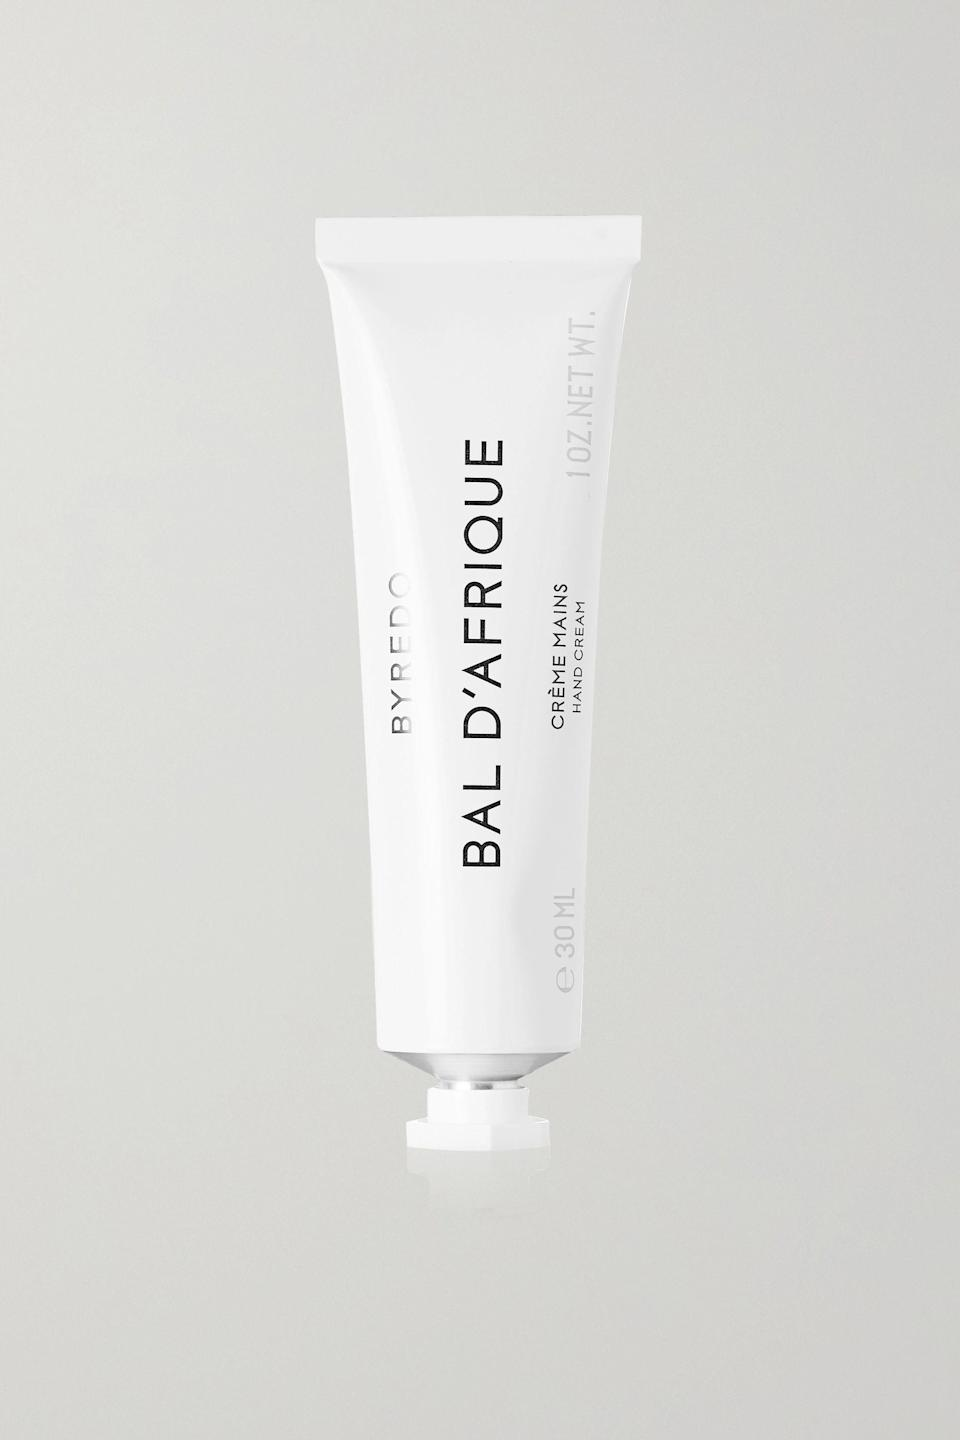 """<p><strong>Byredo</strong></p><p>net-a-porter.com</p><p><strong>$42.00</strong></p><p><a href=""""https://go.redirectingat.com?id=74968X1596630&url=https%3A%2F%2Fwww.net-a-porter.com%2Fen-us%2Fshop%2Fproduct%2Fbyredo%2Fbal-dafrique-hand-cream-30ml%2F529198&sref=https%3A%2F%2Fwww.harpersbazaar.com%2Ffashion%2Fg32447867%2Fbest-gifts-for-coworkers%2F"""" rel=""""nofollow noopener"""" target=""""_blank"""" data-ylk=""""slk:Shop Now"""" class=""""link rapid-noclick-resp"""">Shop Now</a></p><p>Upgrade your work wife with this elegant hand cream by Byredo. </p>"""